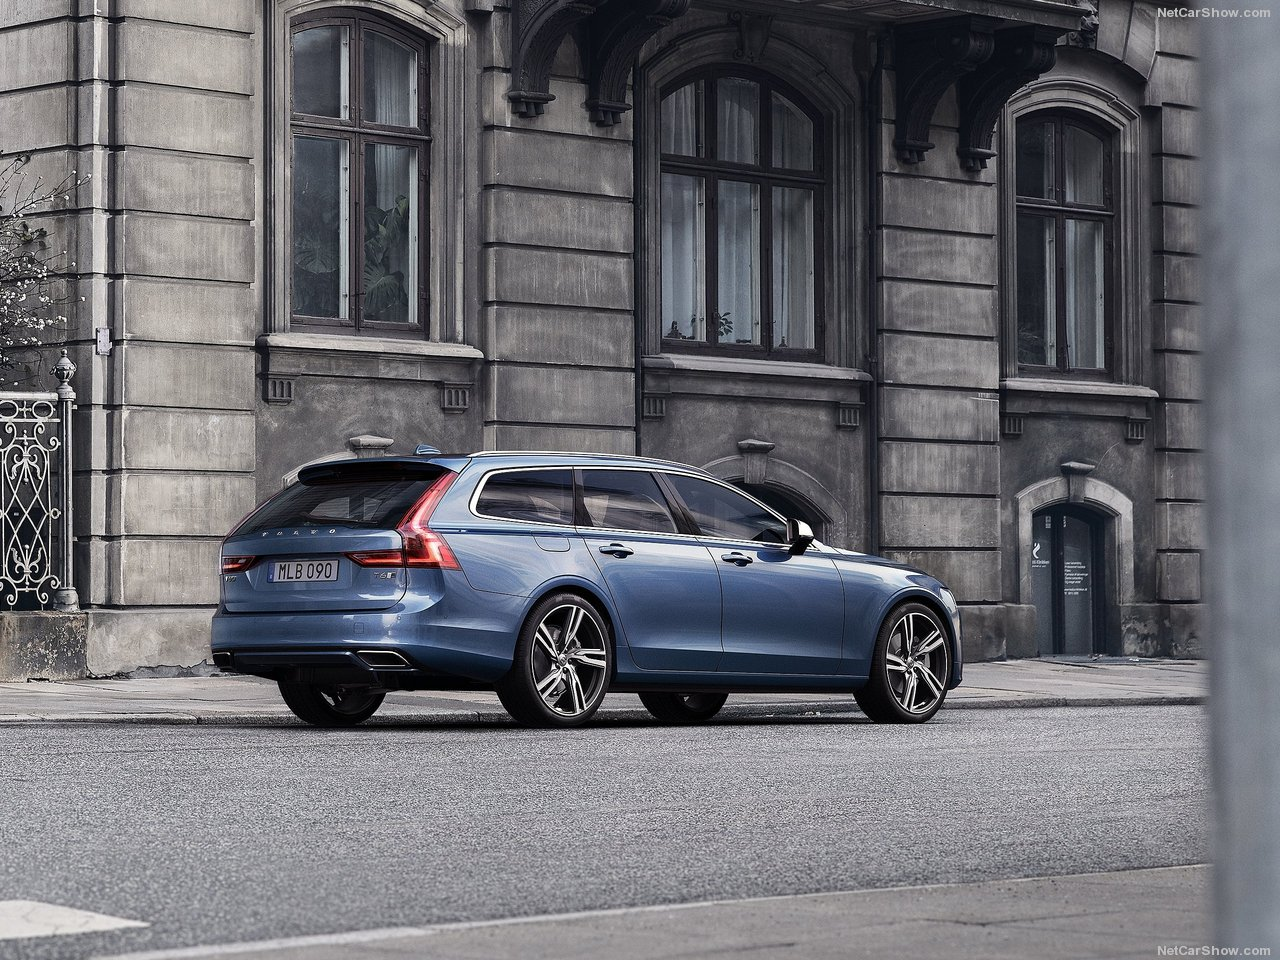 Volvo Sets 2021 Deadline for Its Self-Driving Car, Looks ...